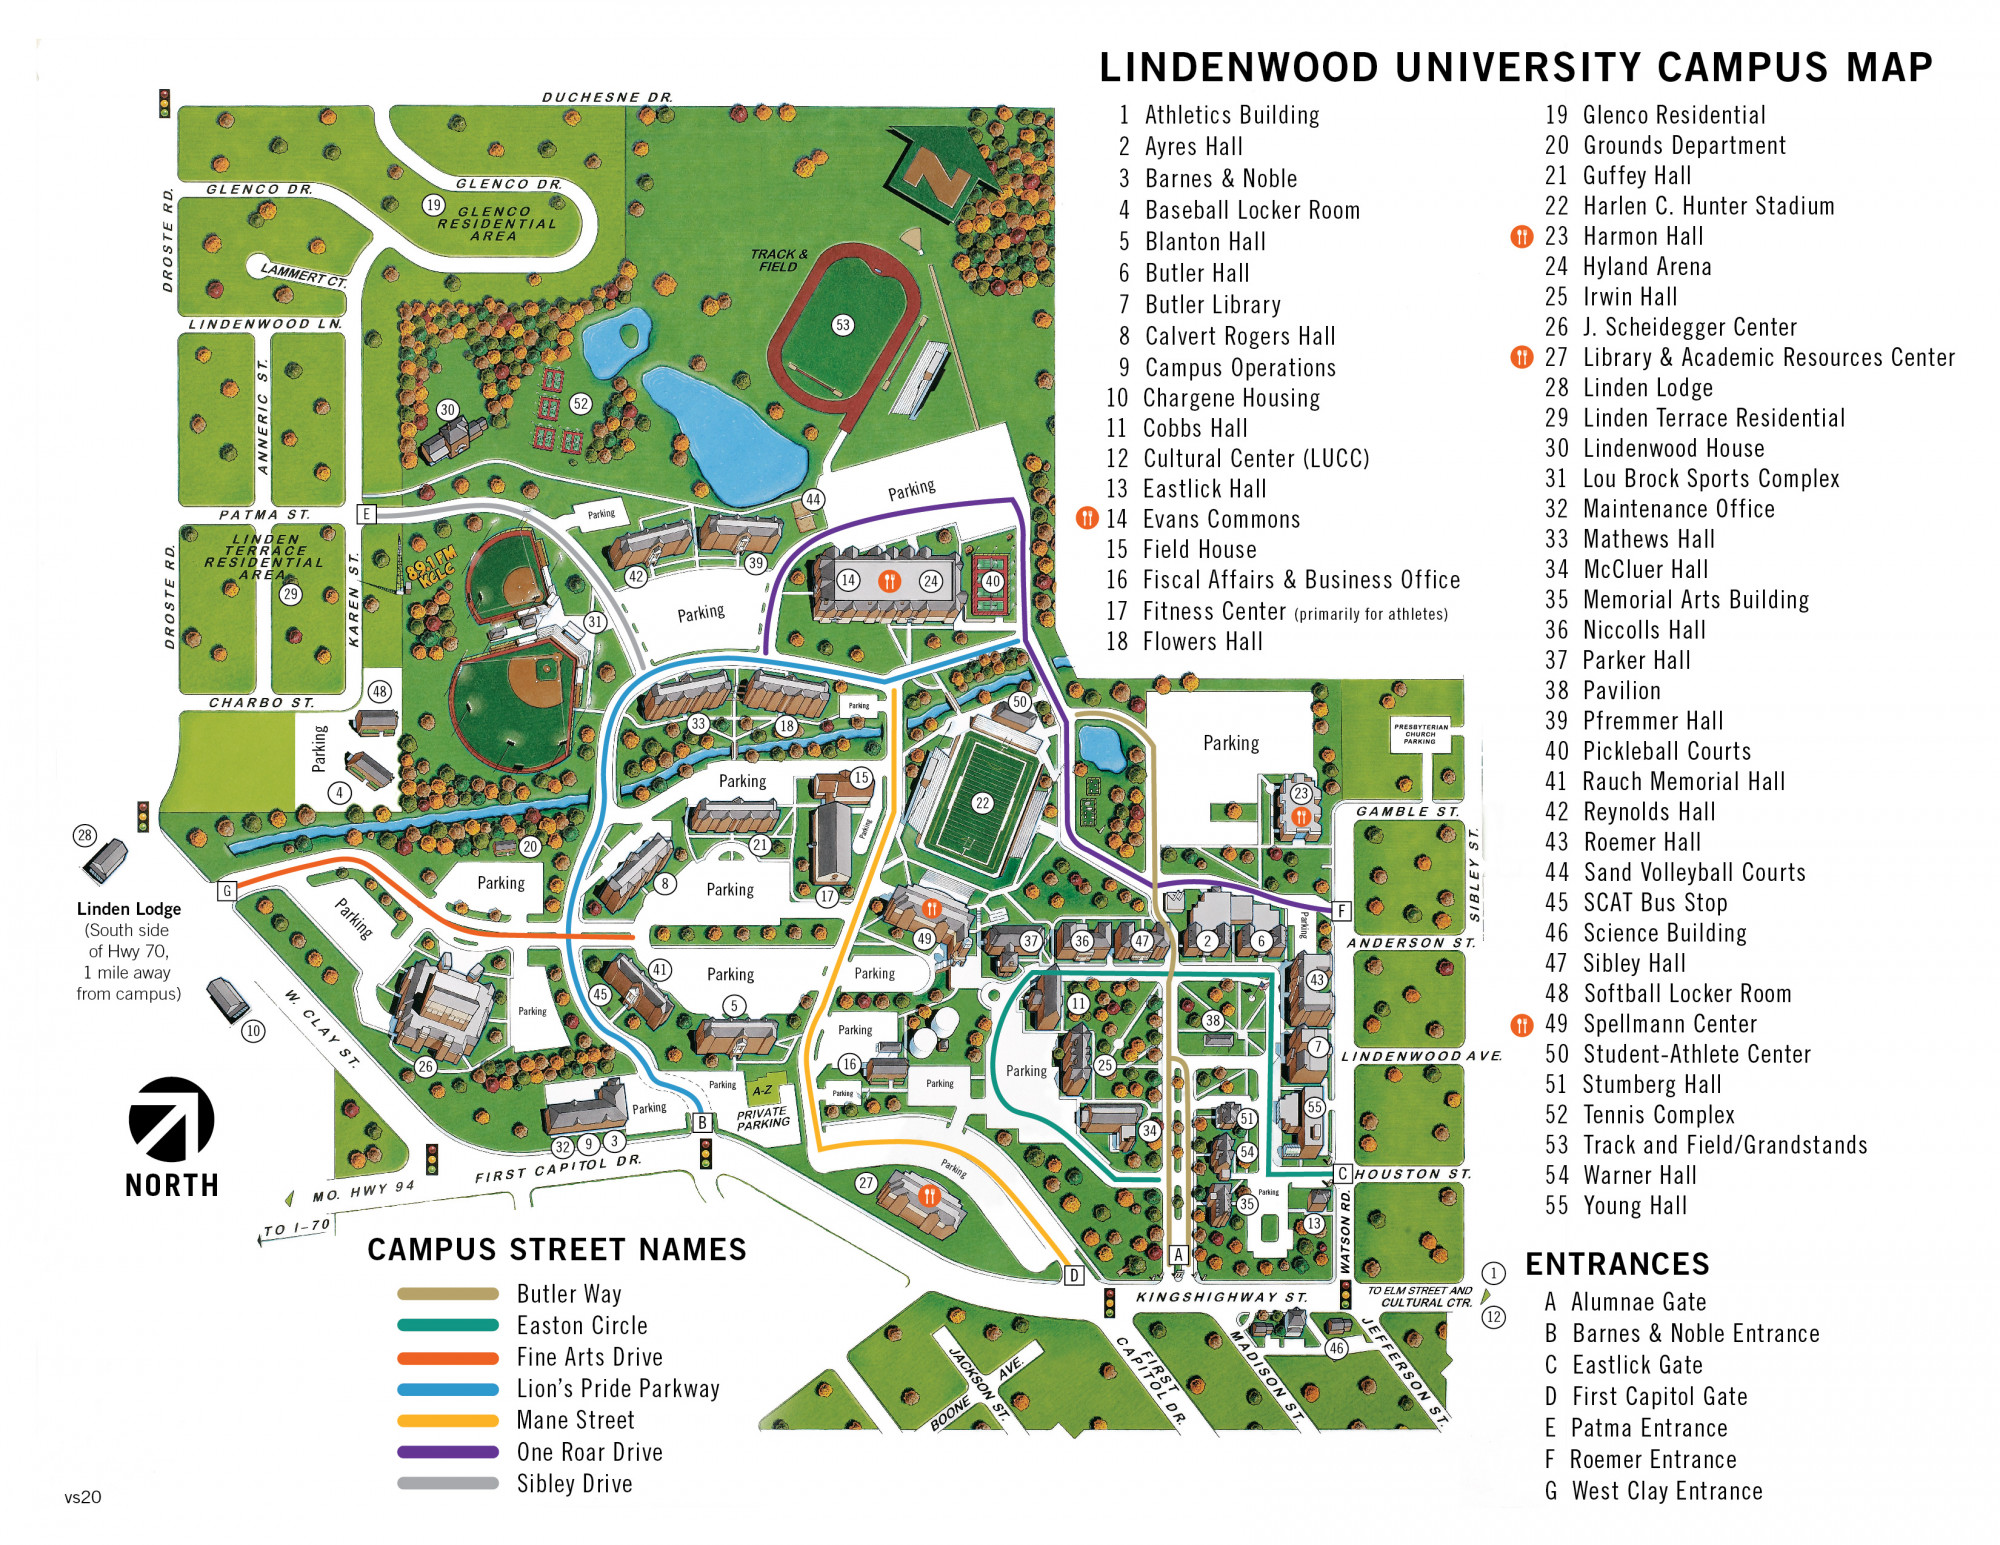 Campus Map For St Charles Lindenwood University